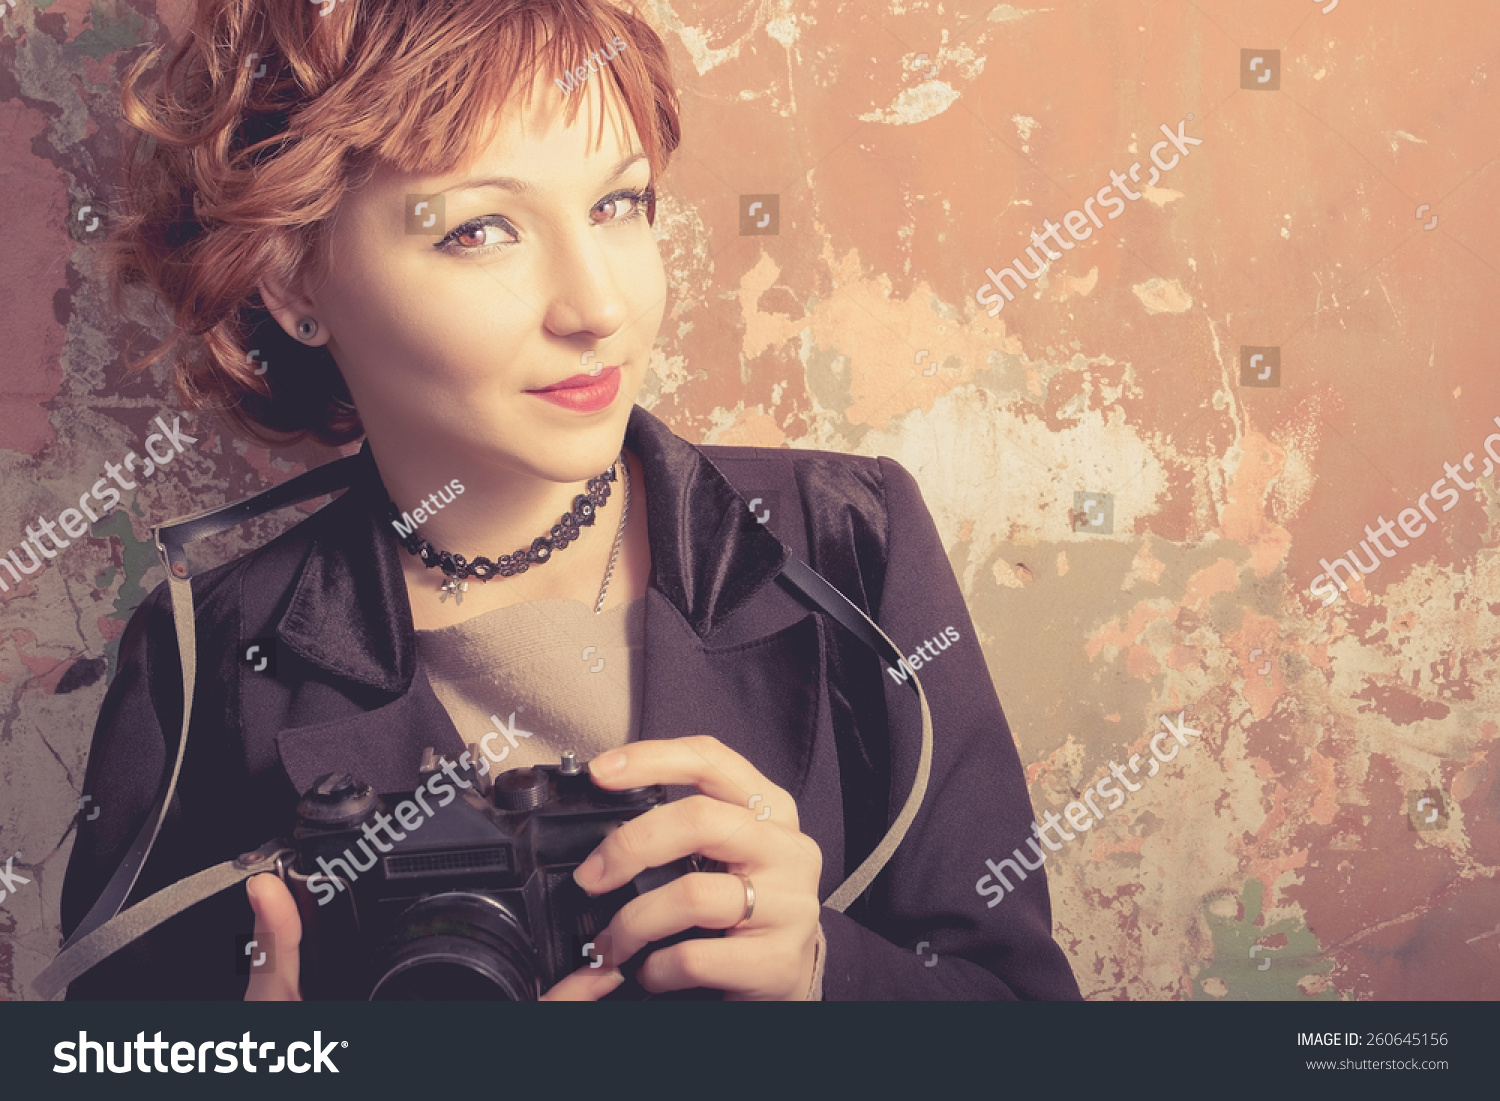 Redhead hipster woman taking photos with retro film camera outdoors.